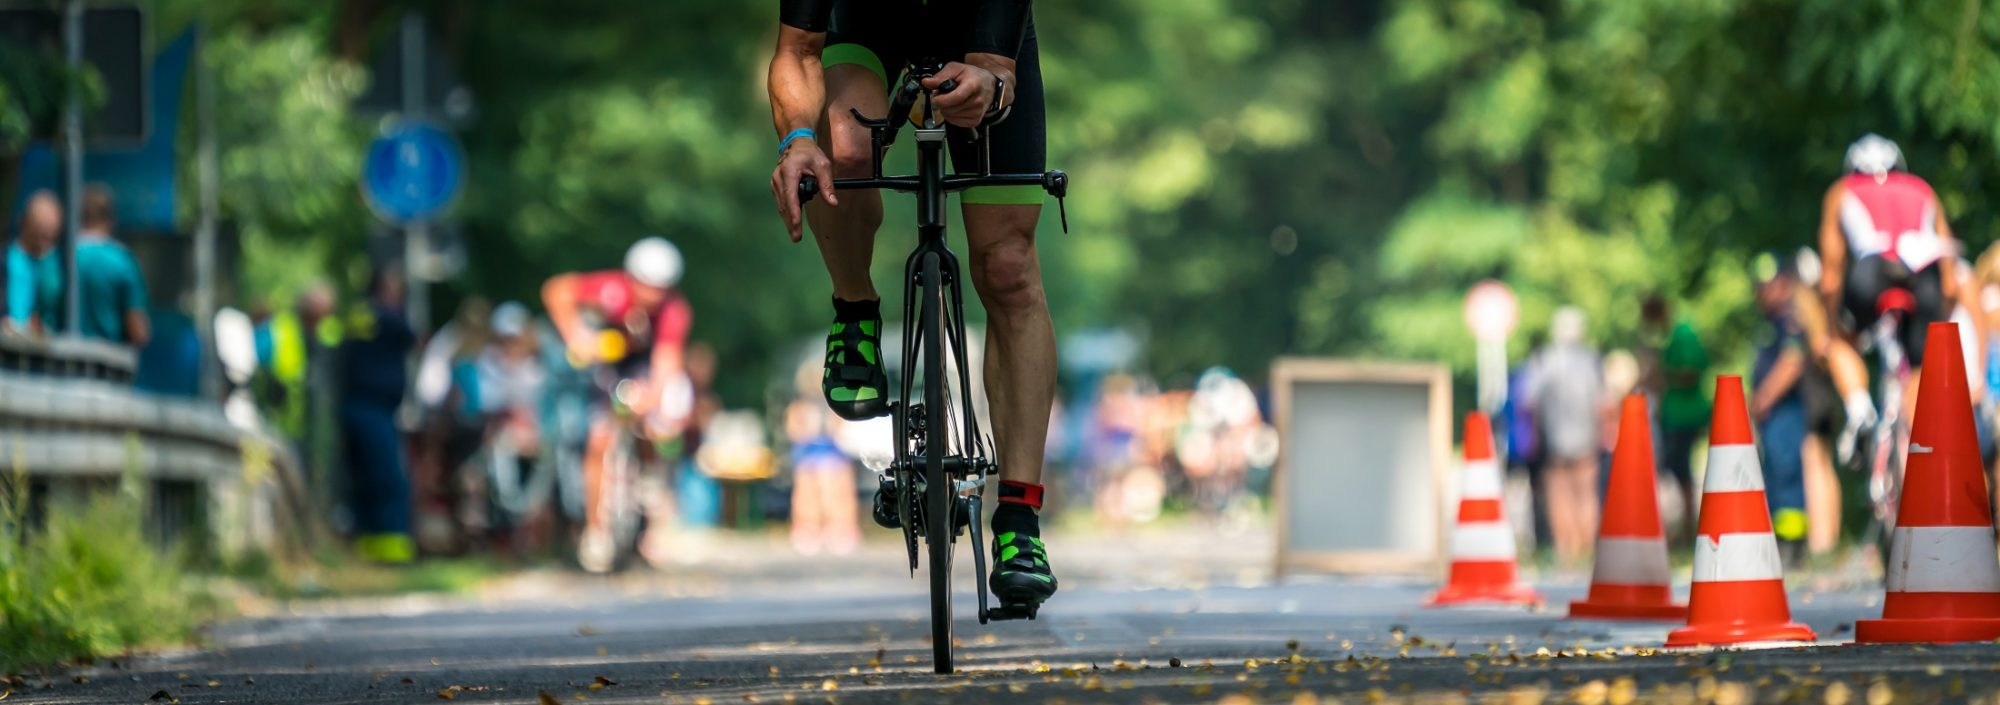 Triathlon distances in miles and kilometers